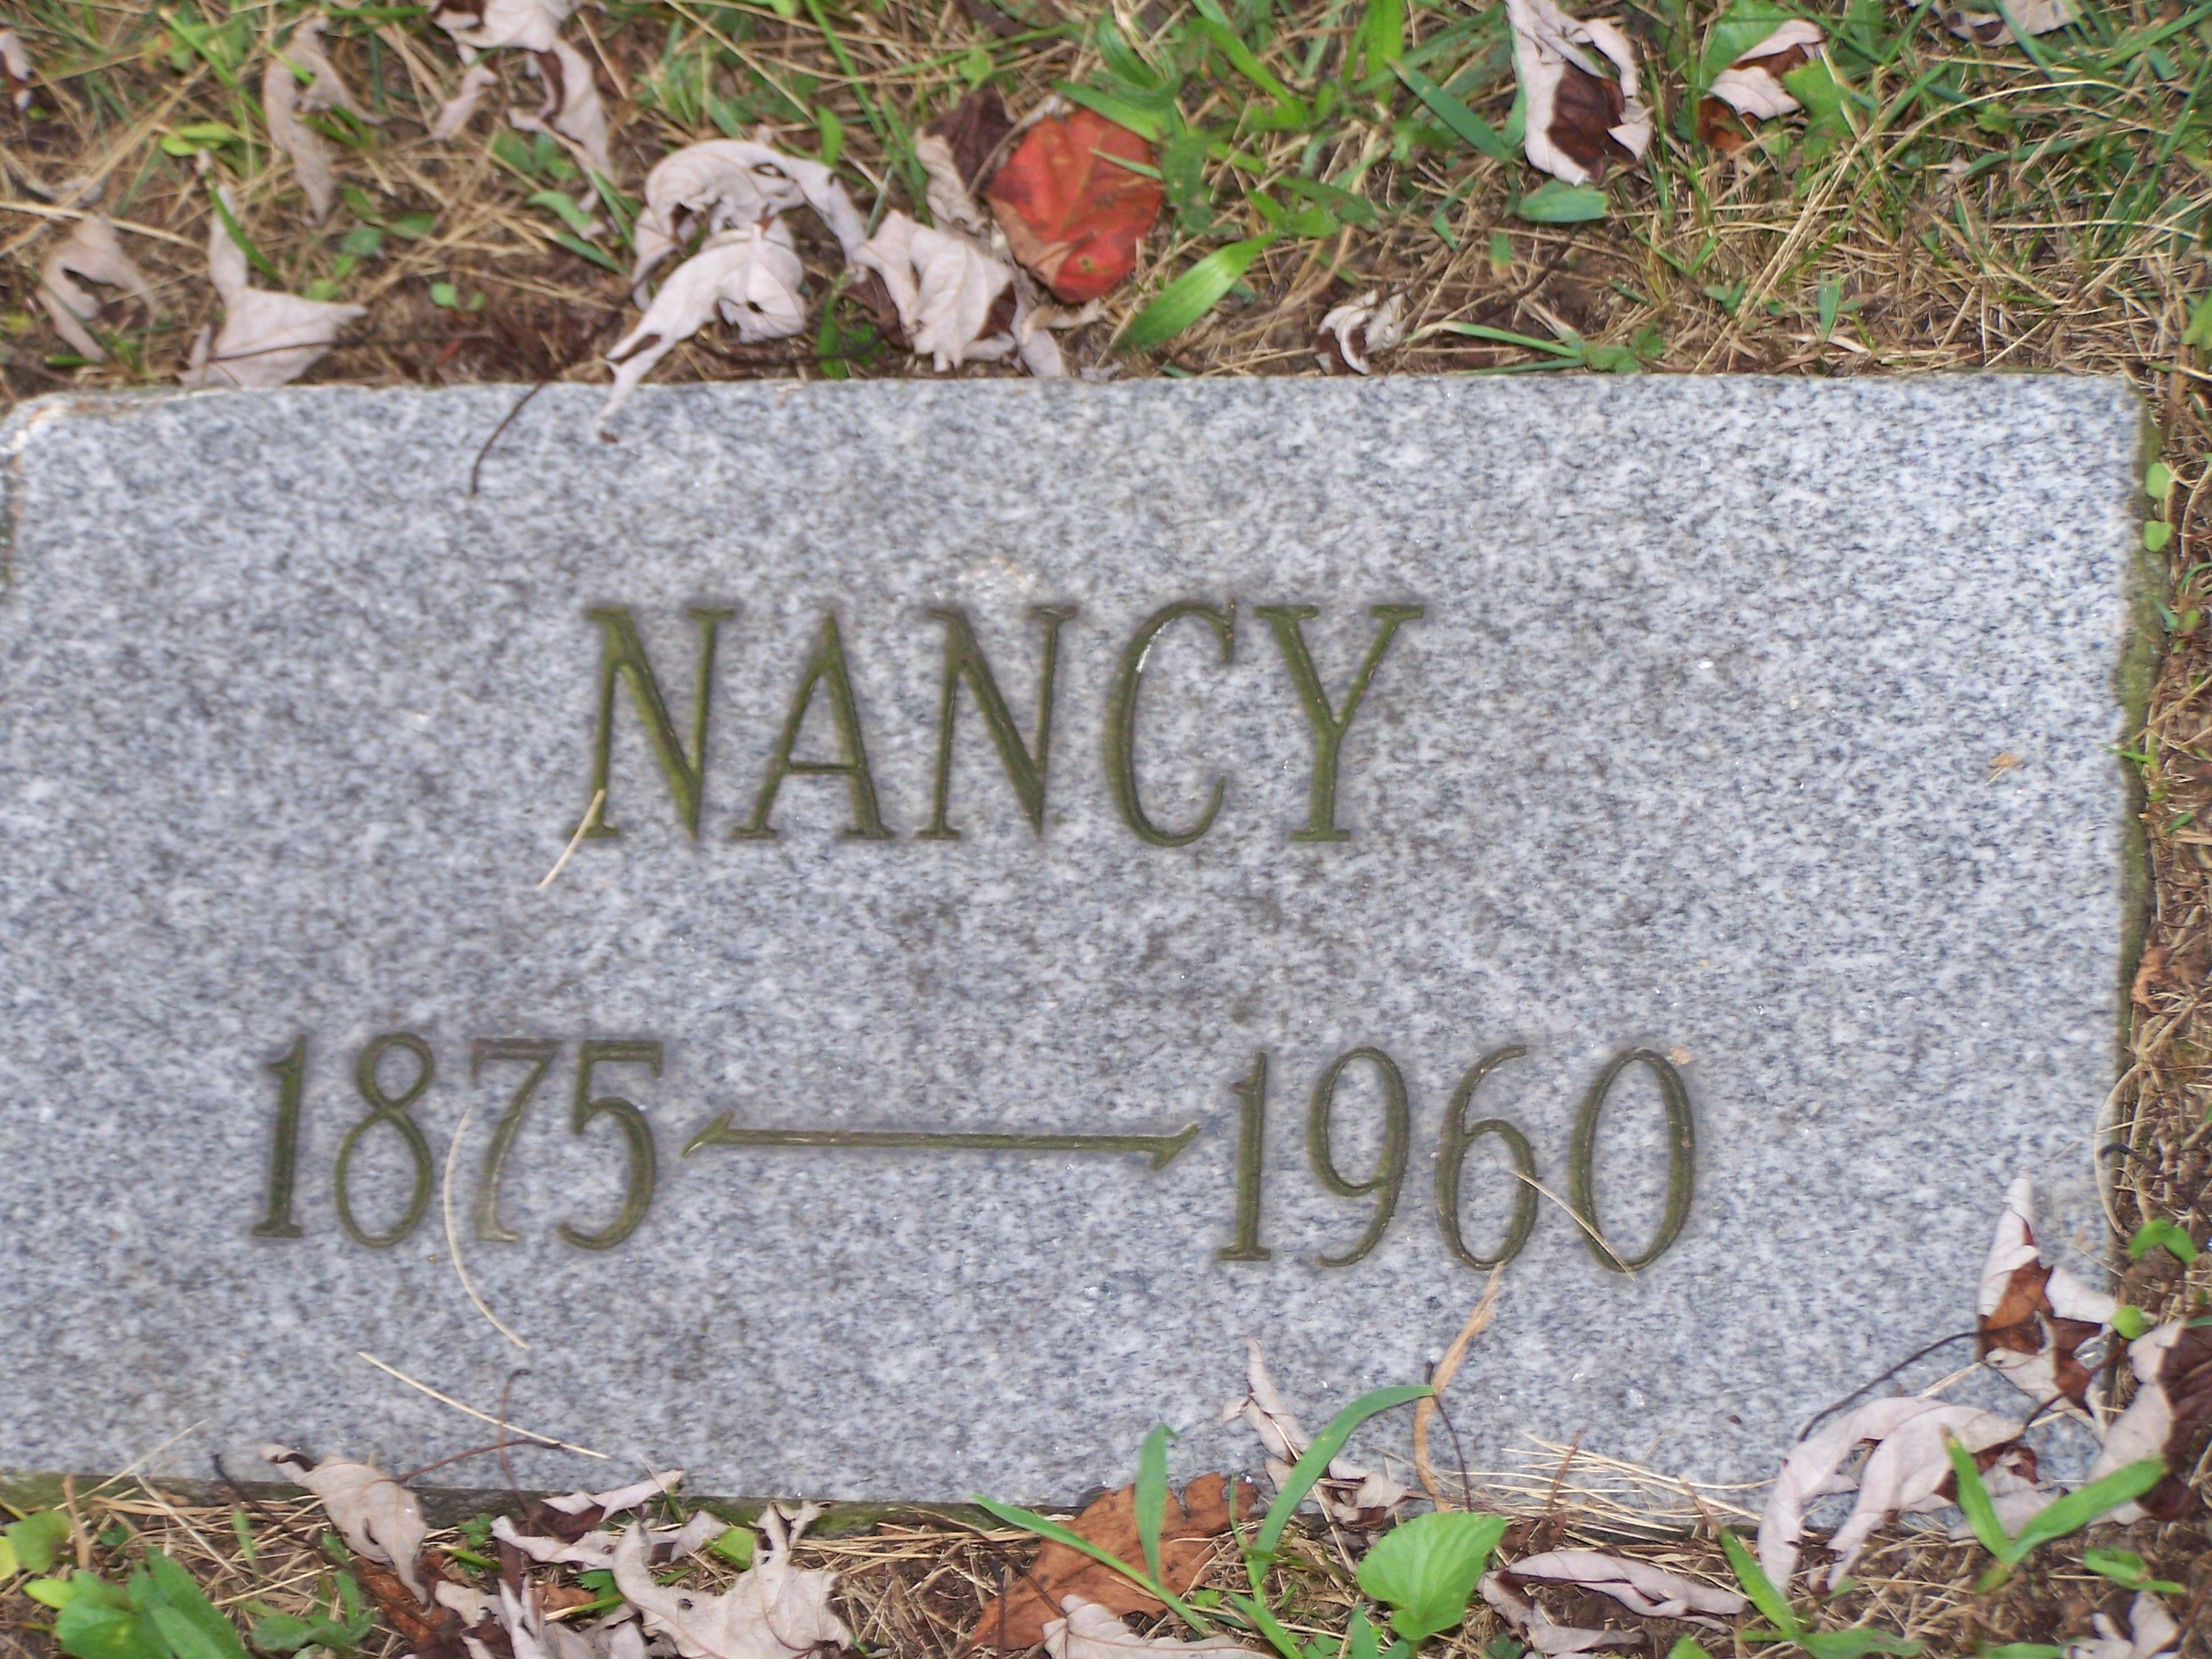 Nancy Bell (1875 - 1960) - My Great-grandmother that I was named after.